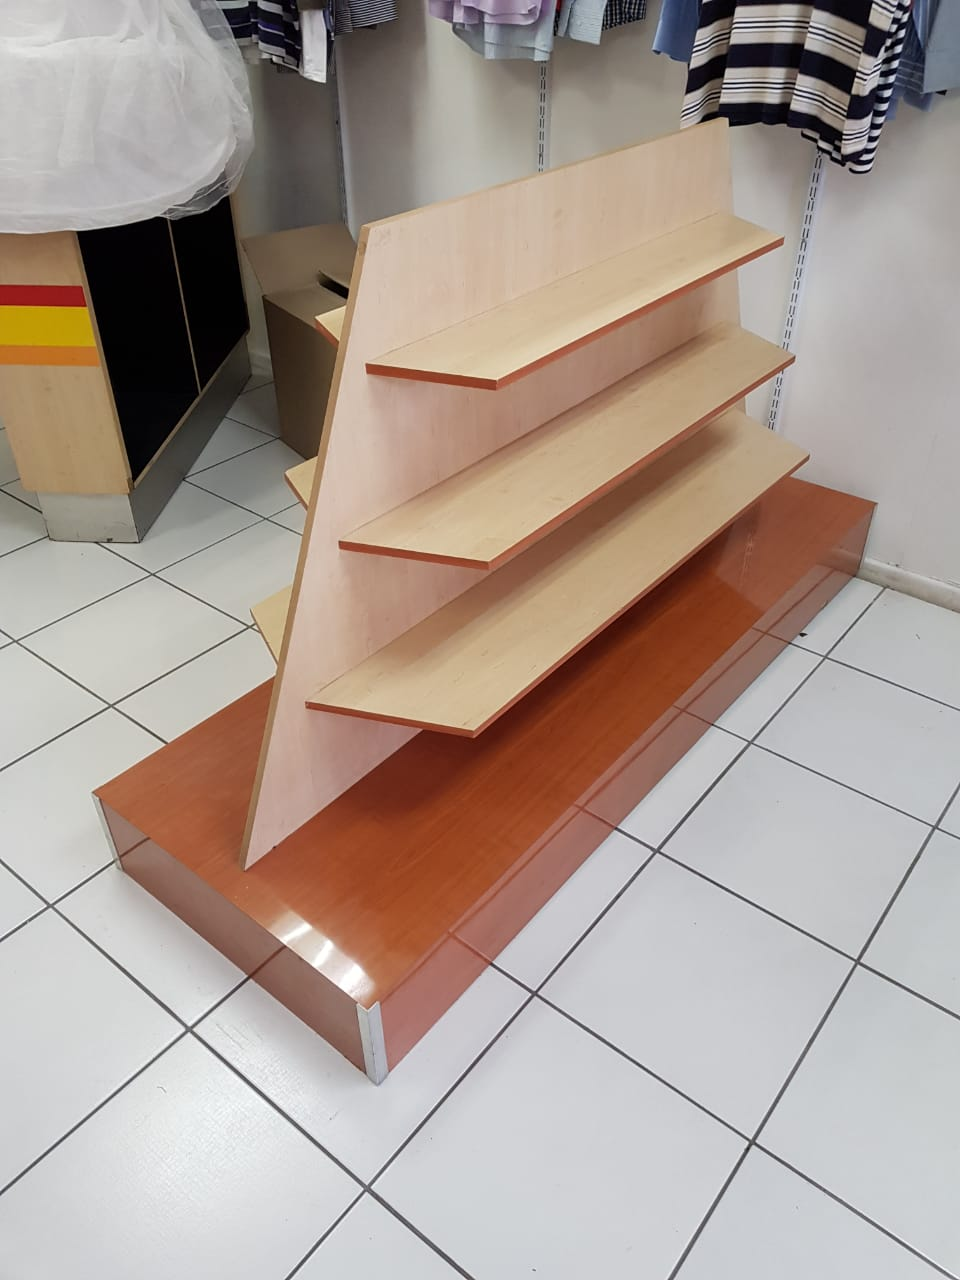 Various Store display stands/units.